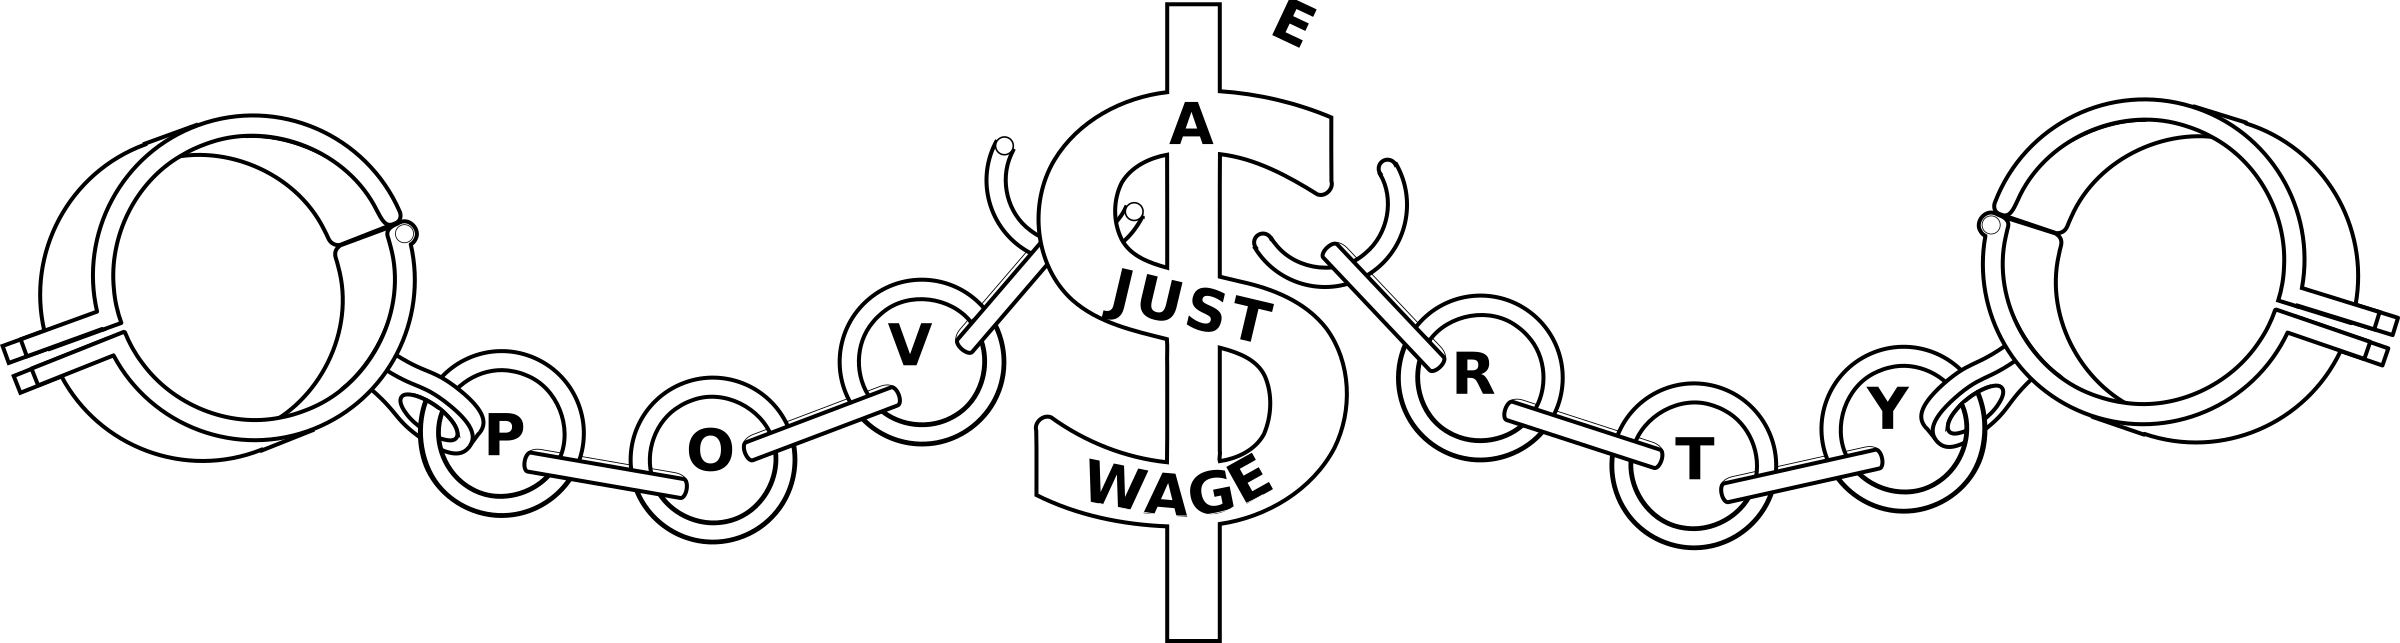 A fair wage breaking. Poverty clipart black and white